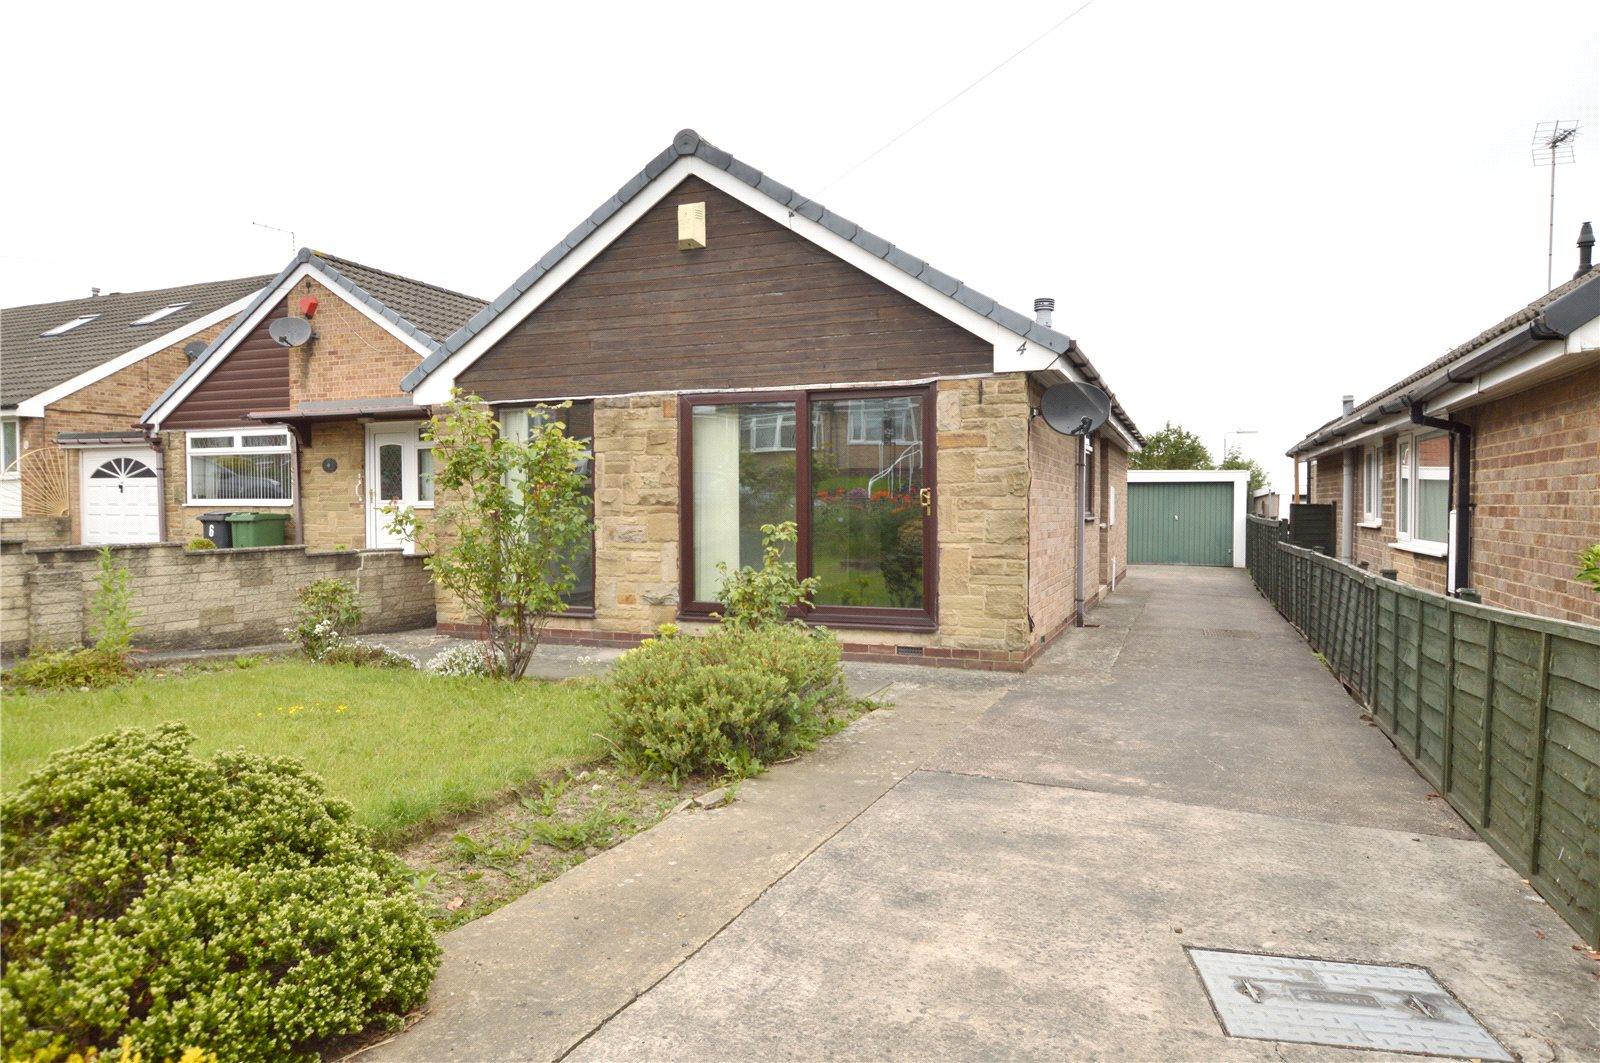 Property for sale in Pudsey, exterior detached bungalow